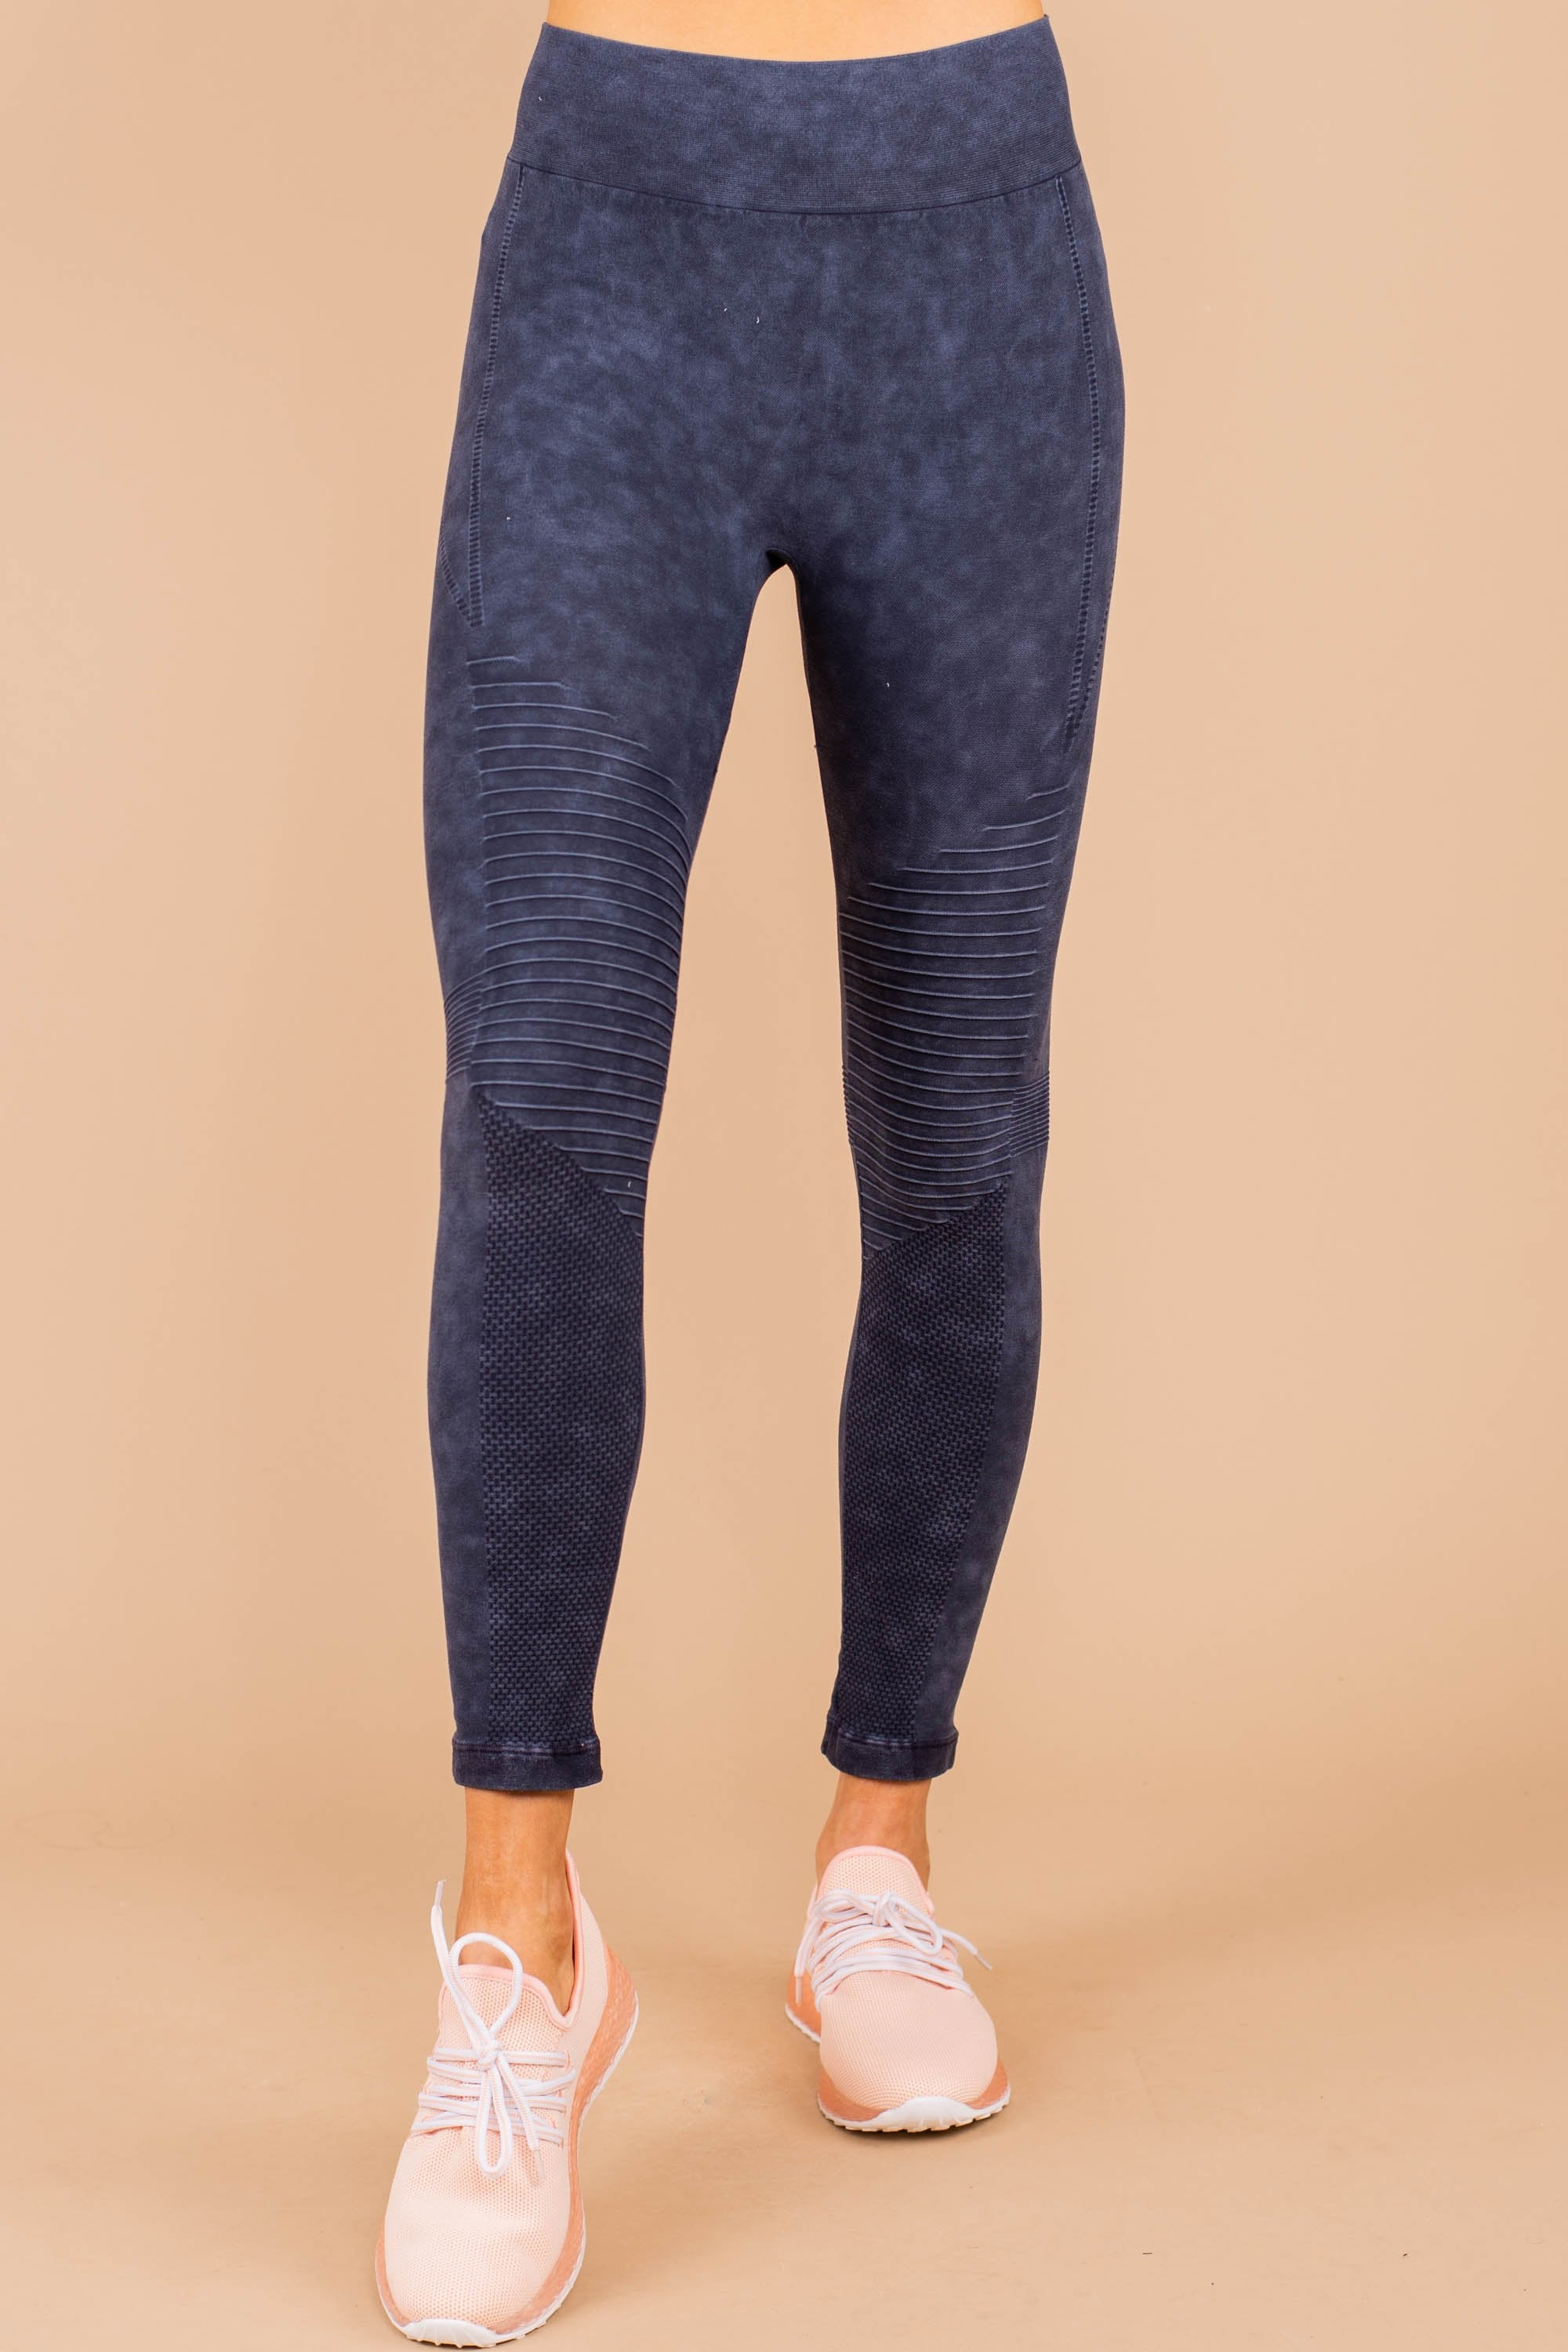 leggings, bottoms, pants, fall, winter, ankle length, trendy, denim, blue, shopping, everyday, activewear, light, nylon, lycra, no lining, neutral